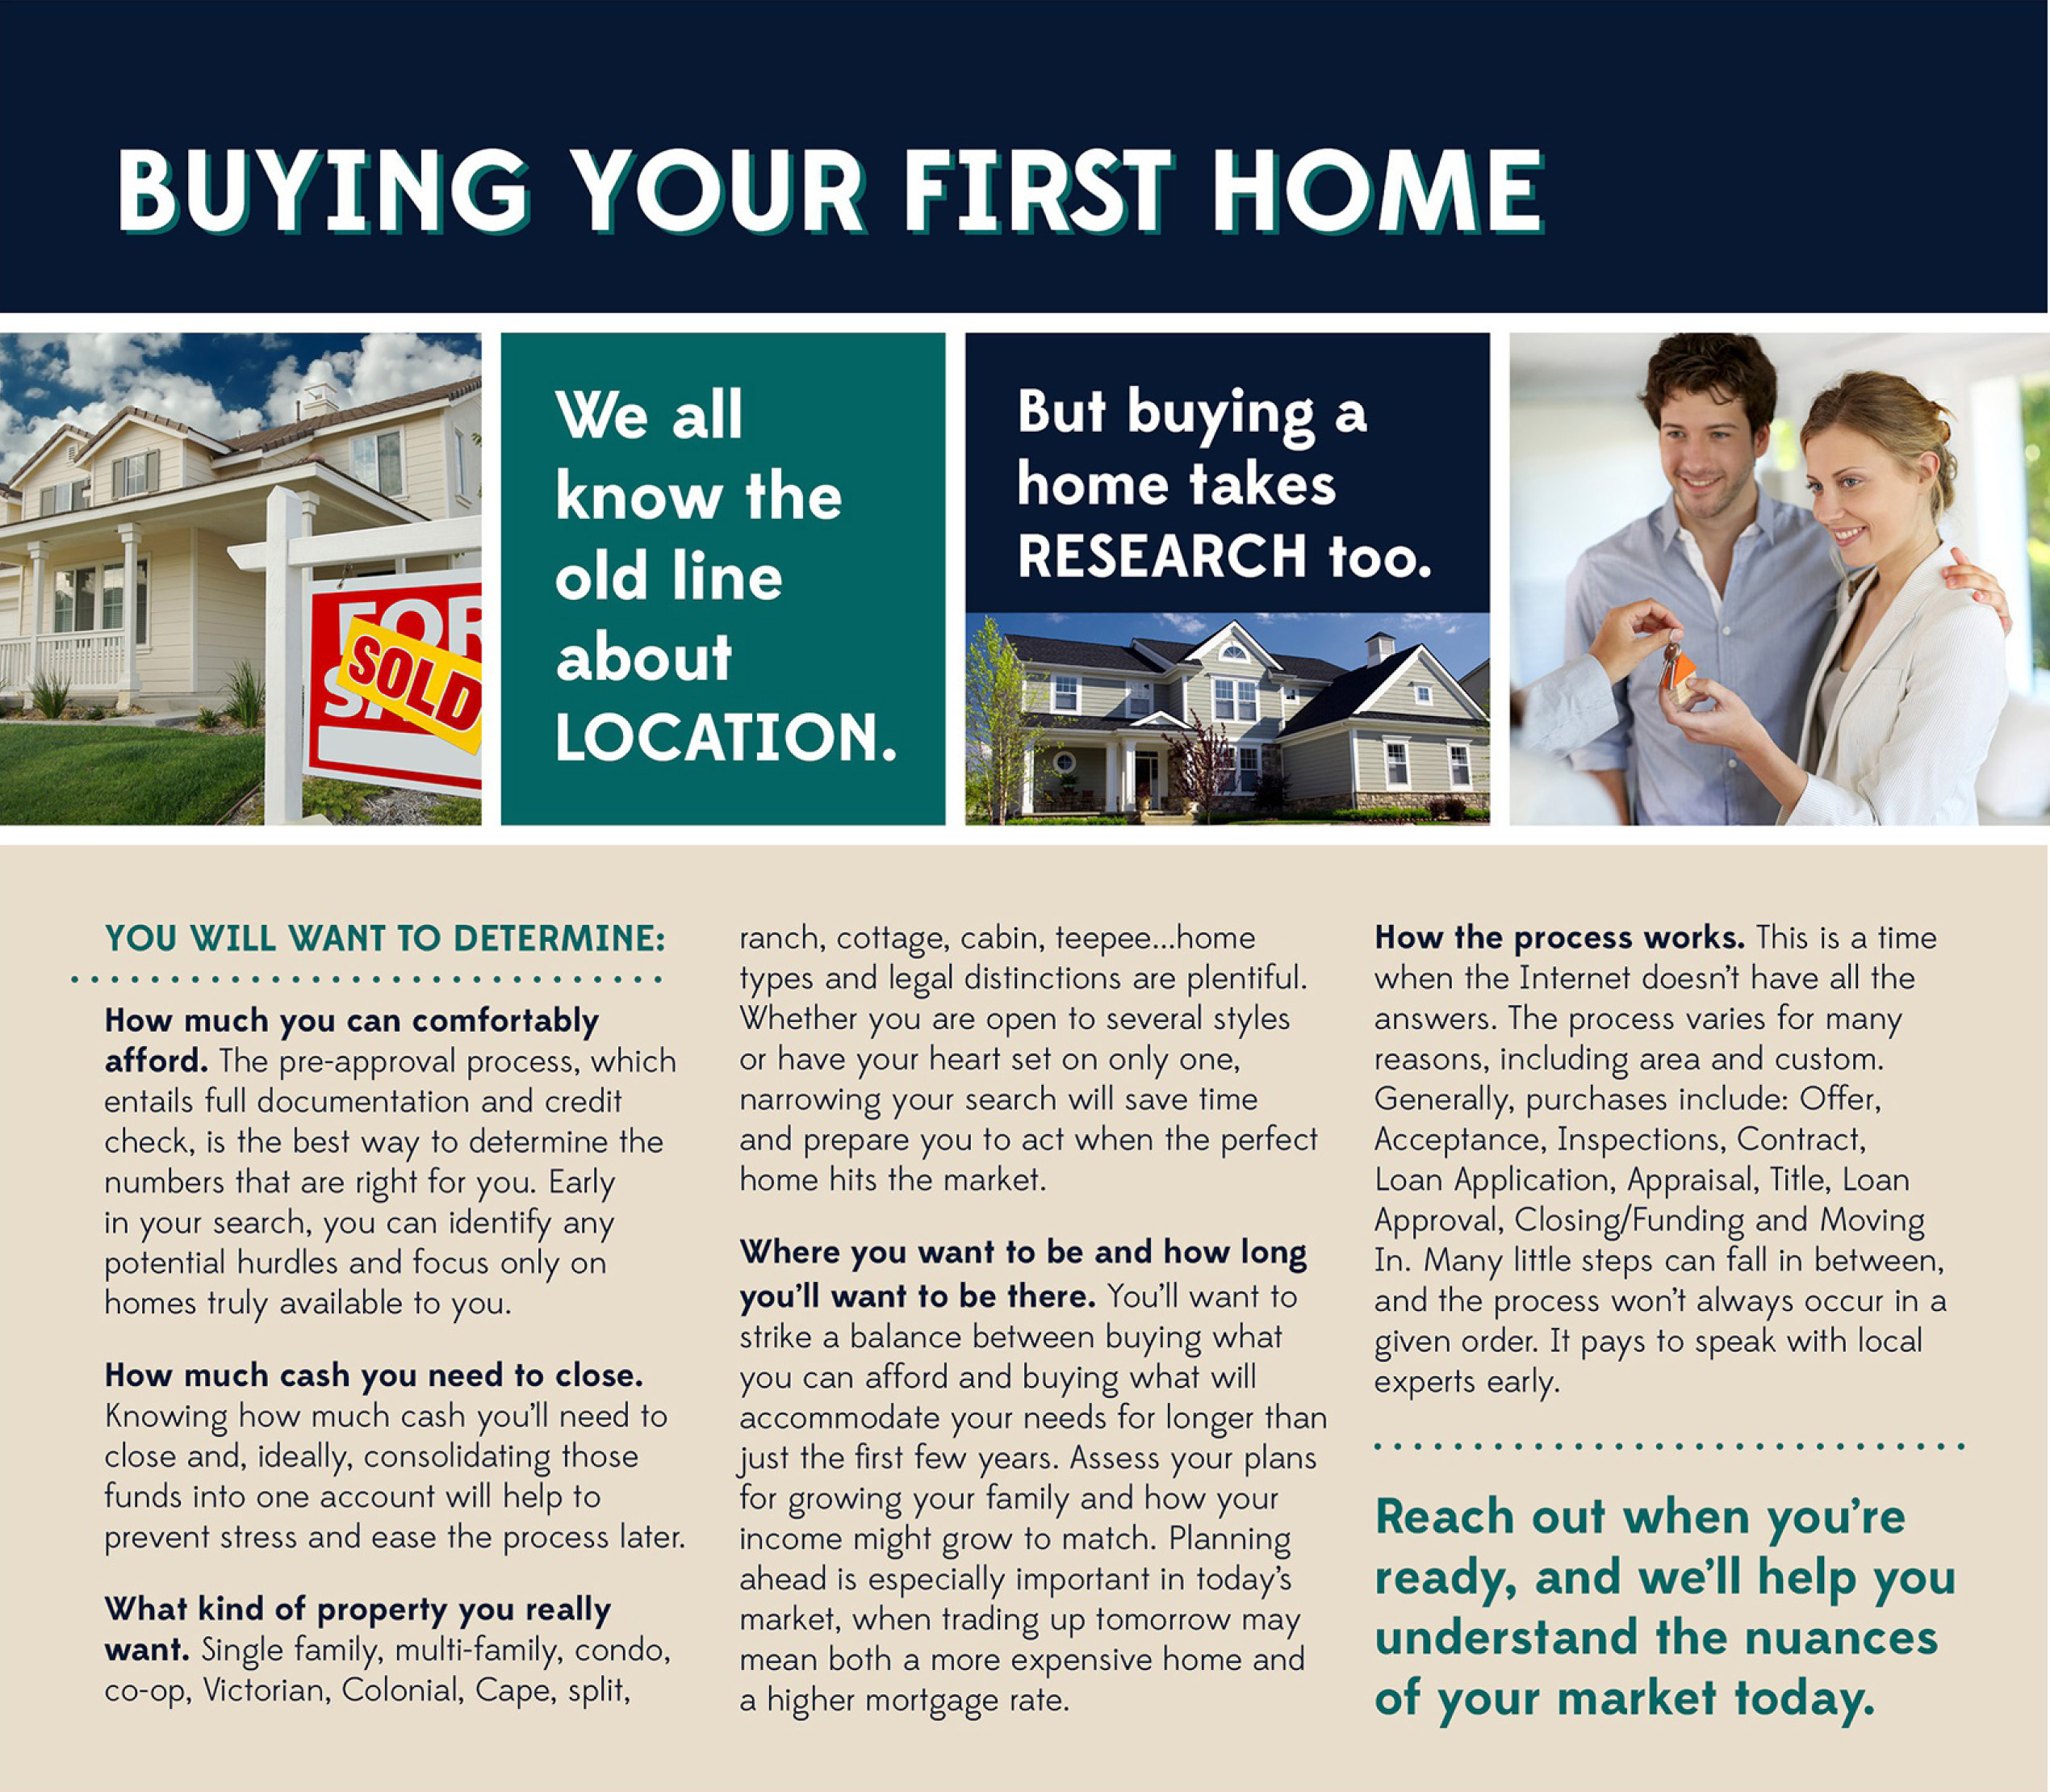 the process of buying your first